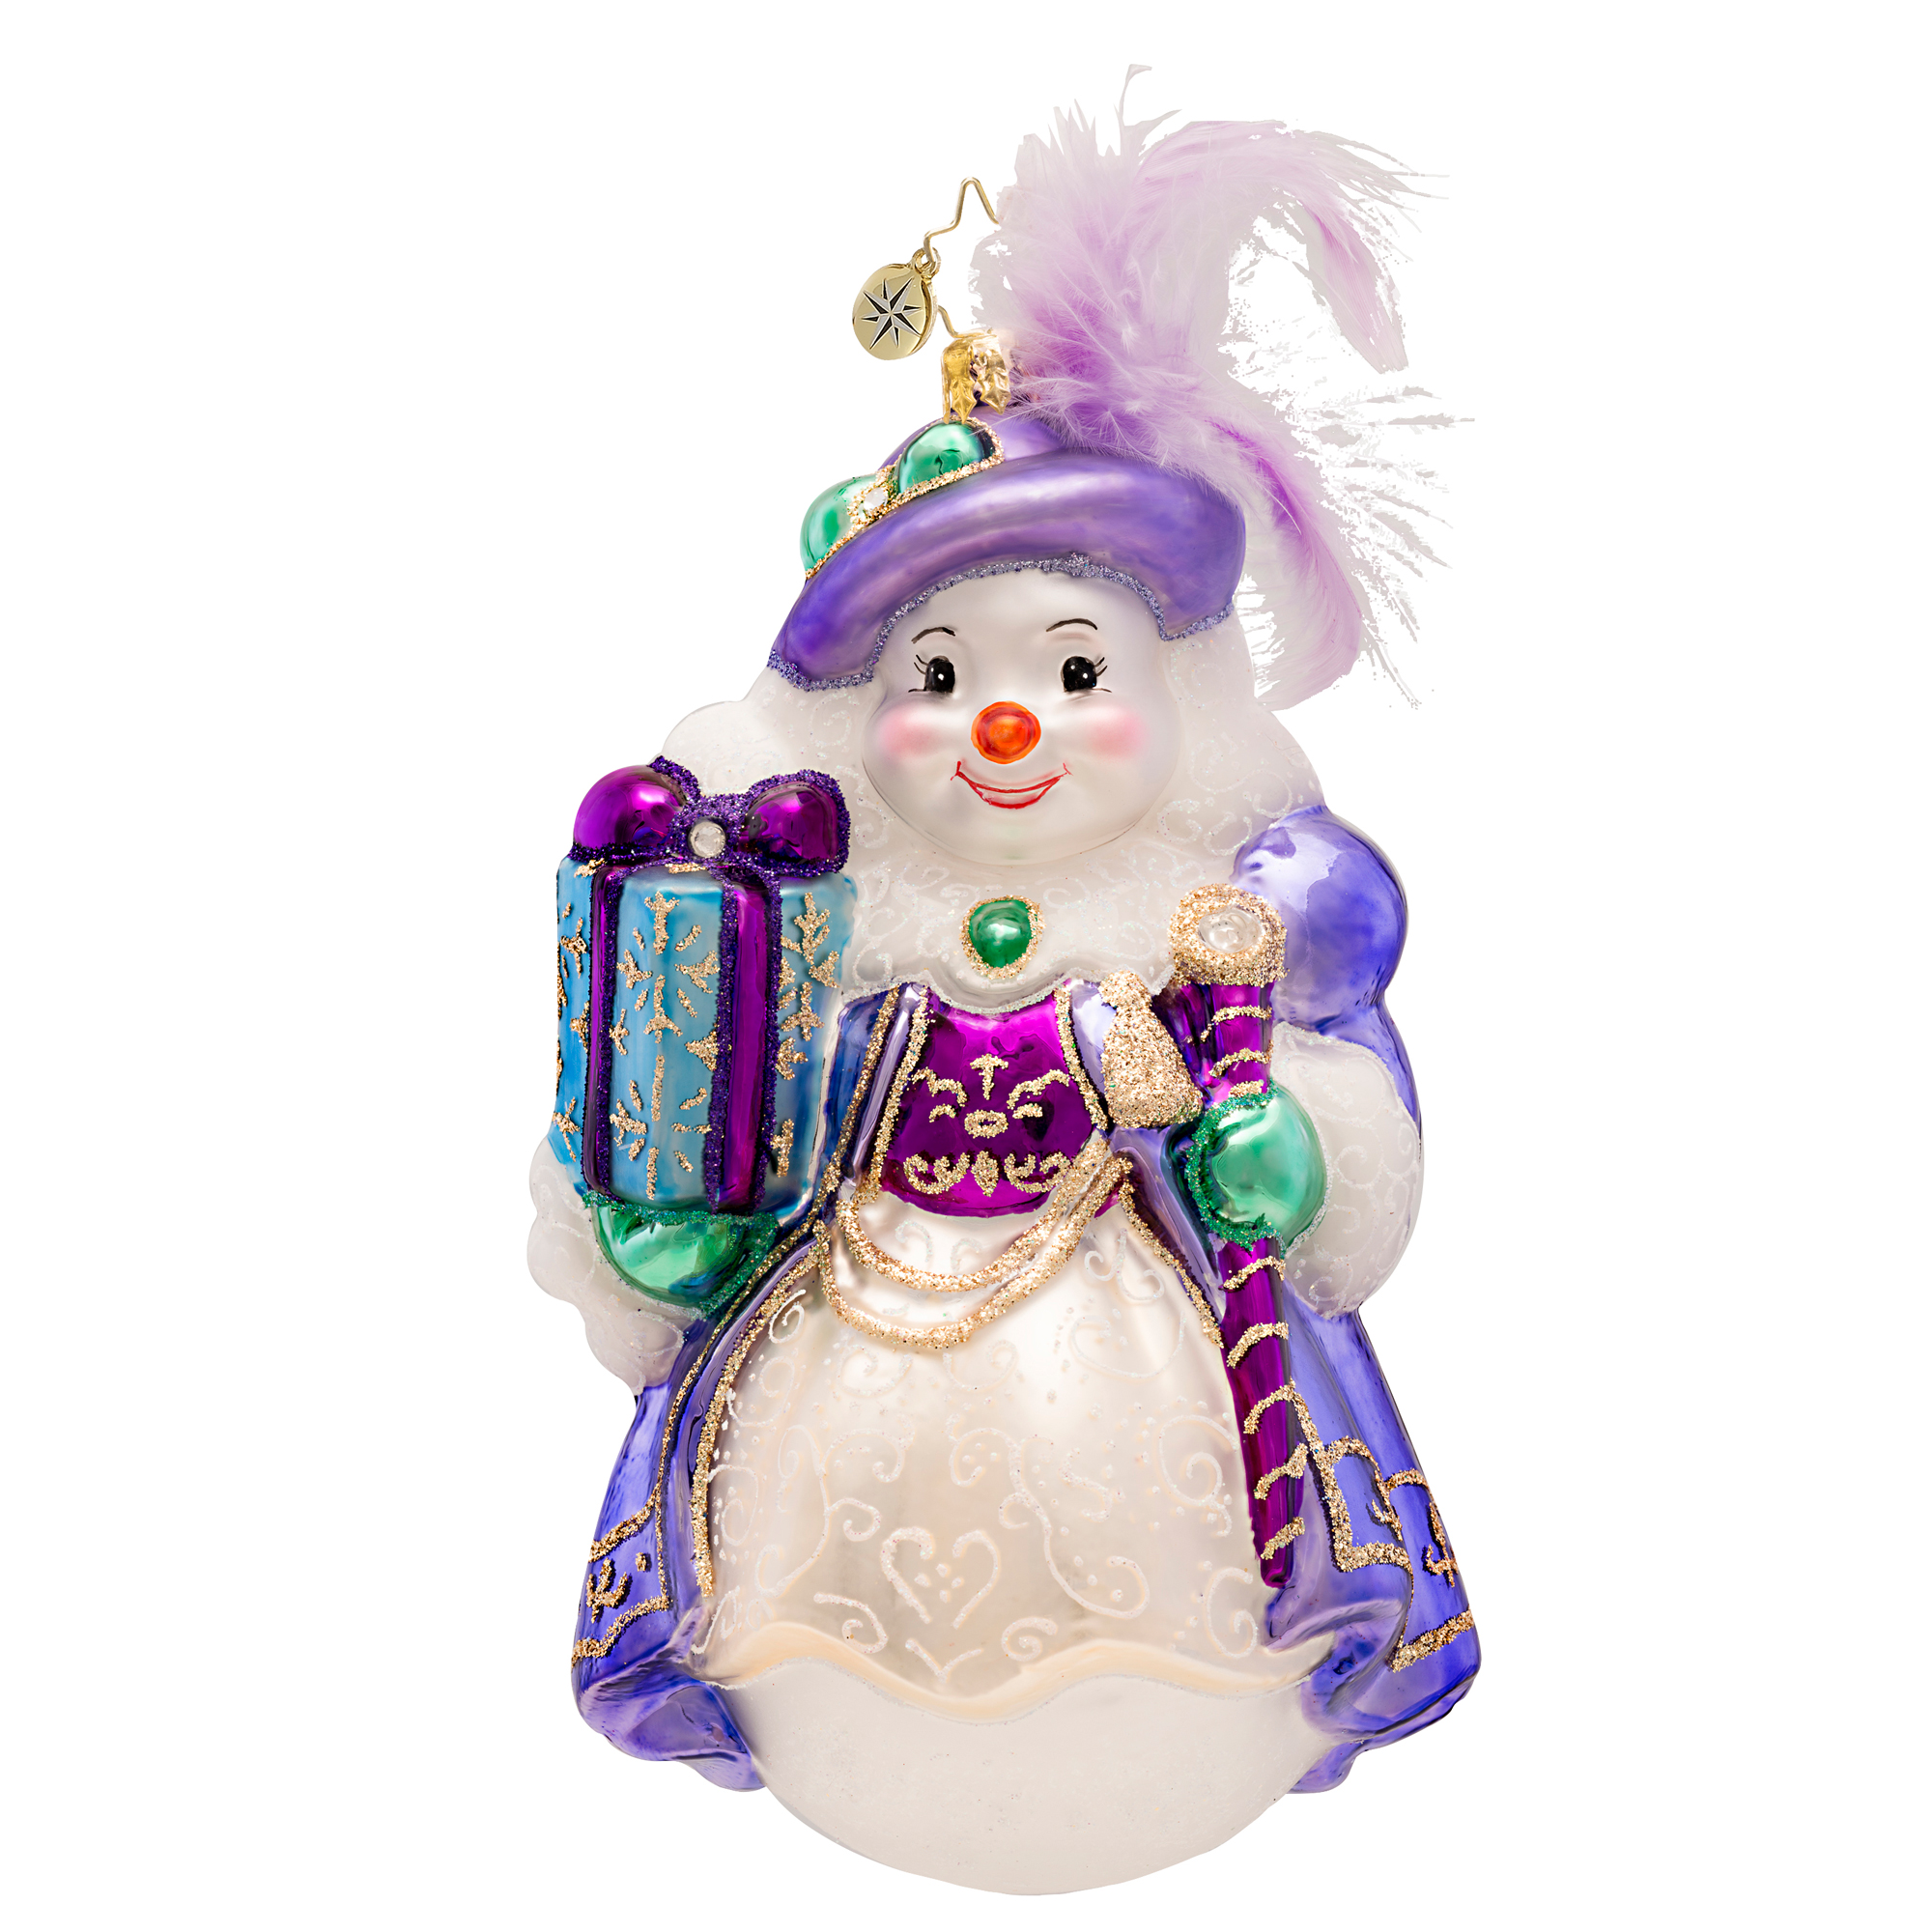 Lovely In Lavender  (retired) Radko Ornament